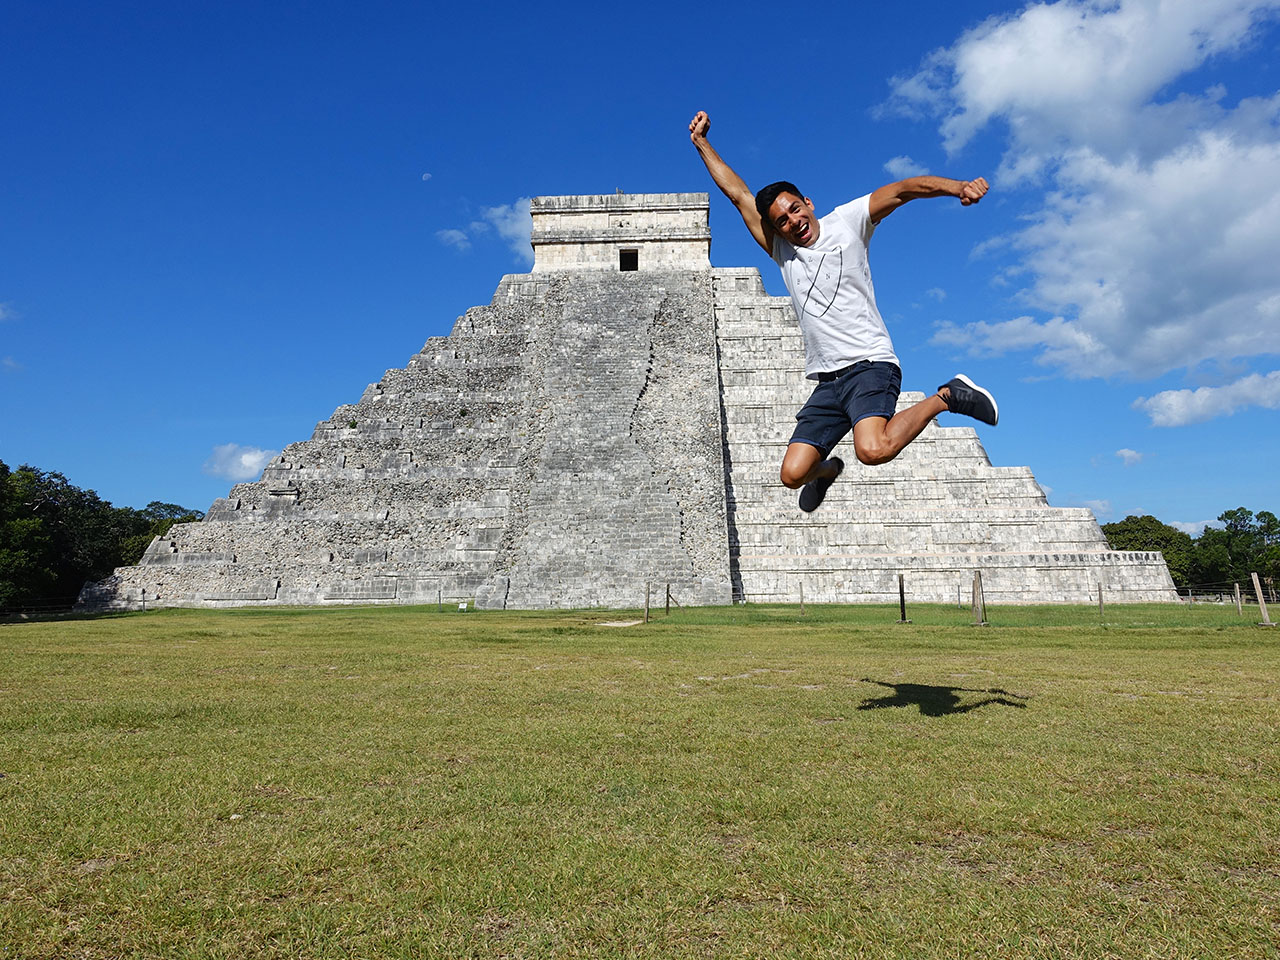 The Day Tripper's Guide to Chichen Itza